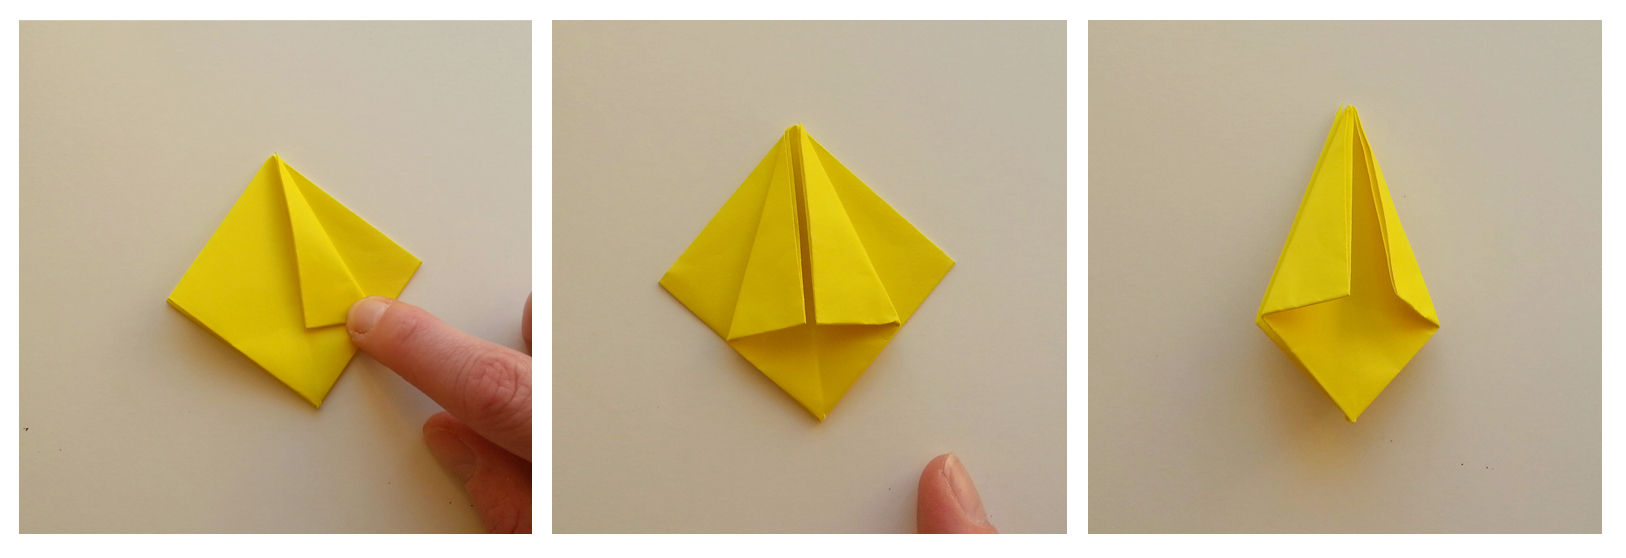 How To Make An Origami Tulip Origami Tulip Tutorial Step 5 Hobcraft Blog